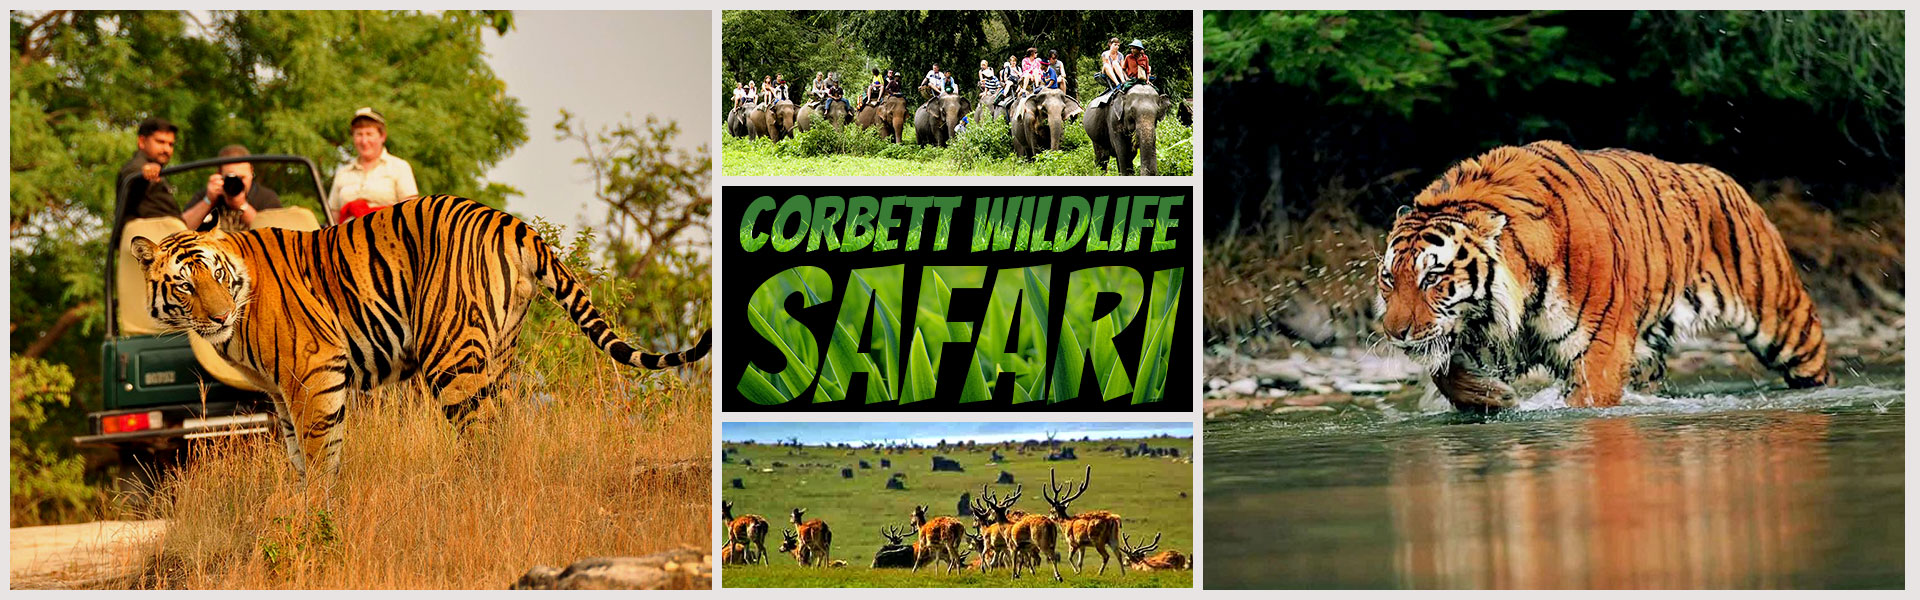 Corbett Wildlife Safari